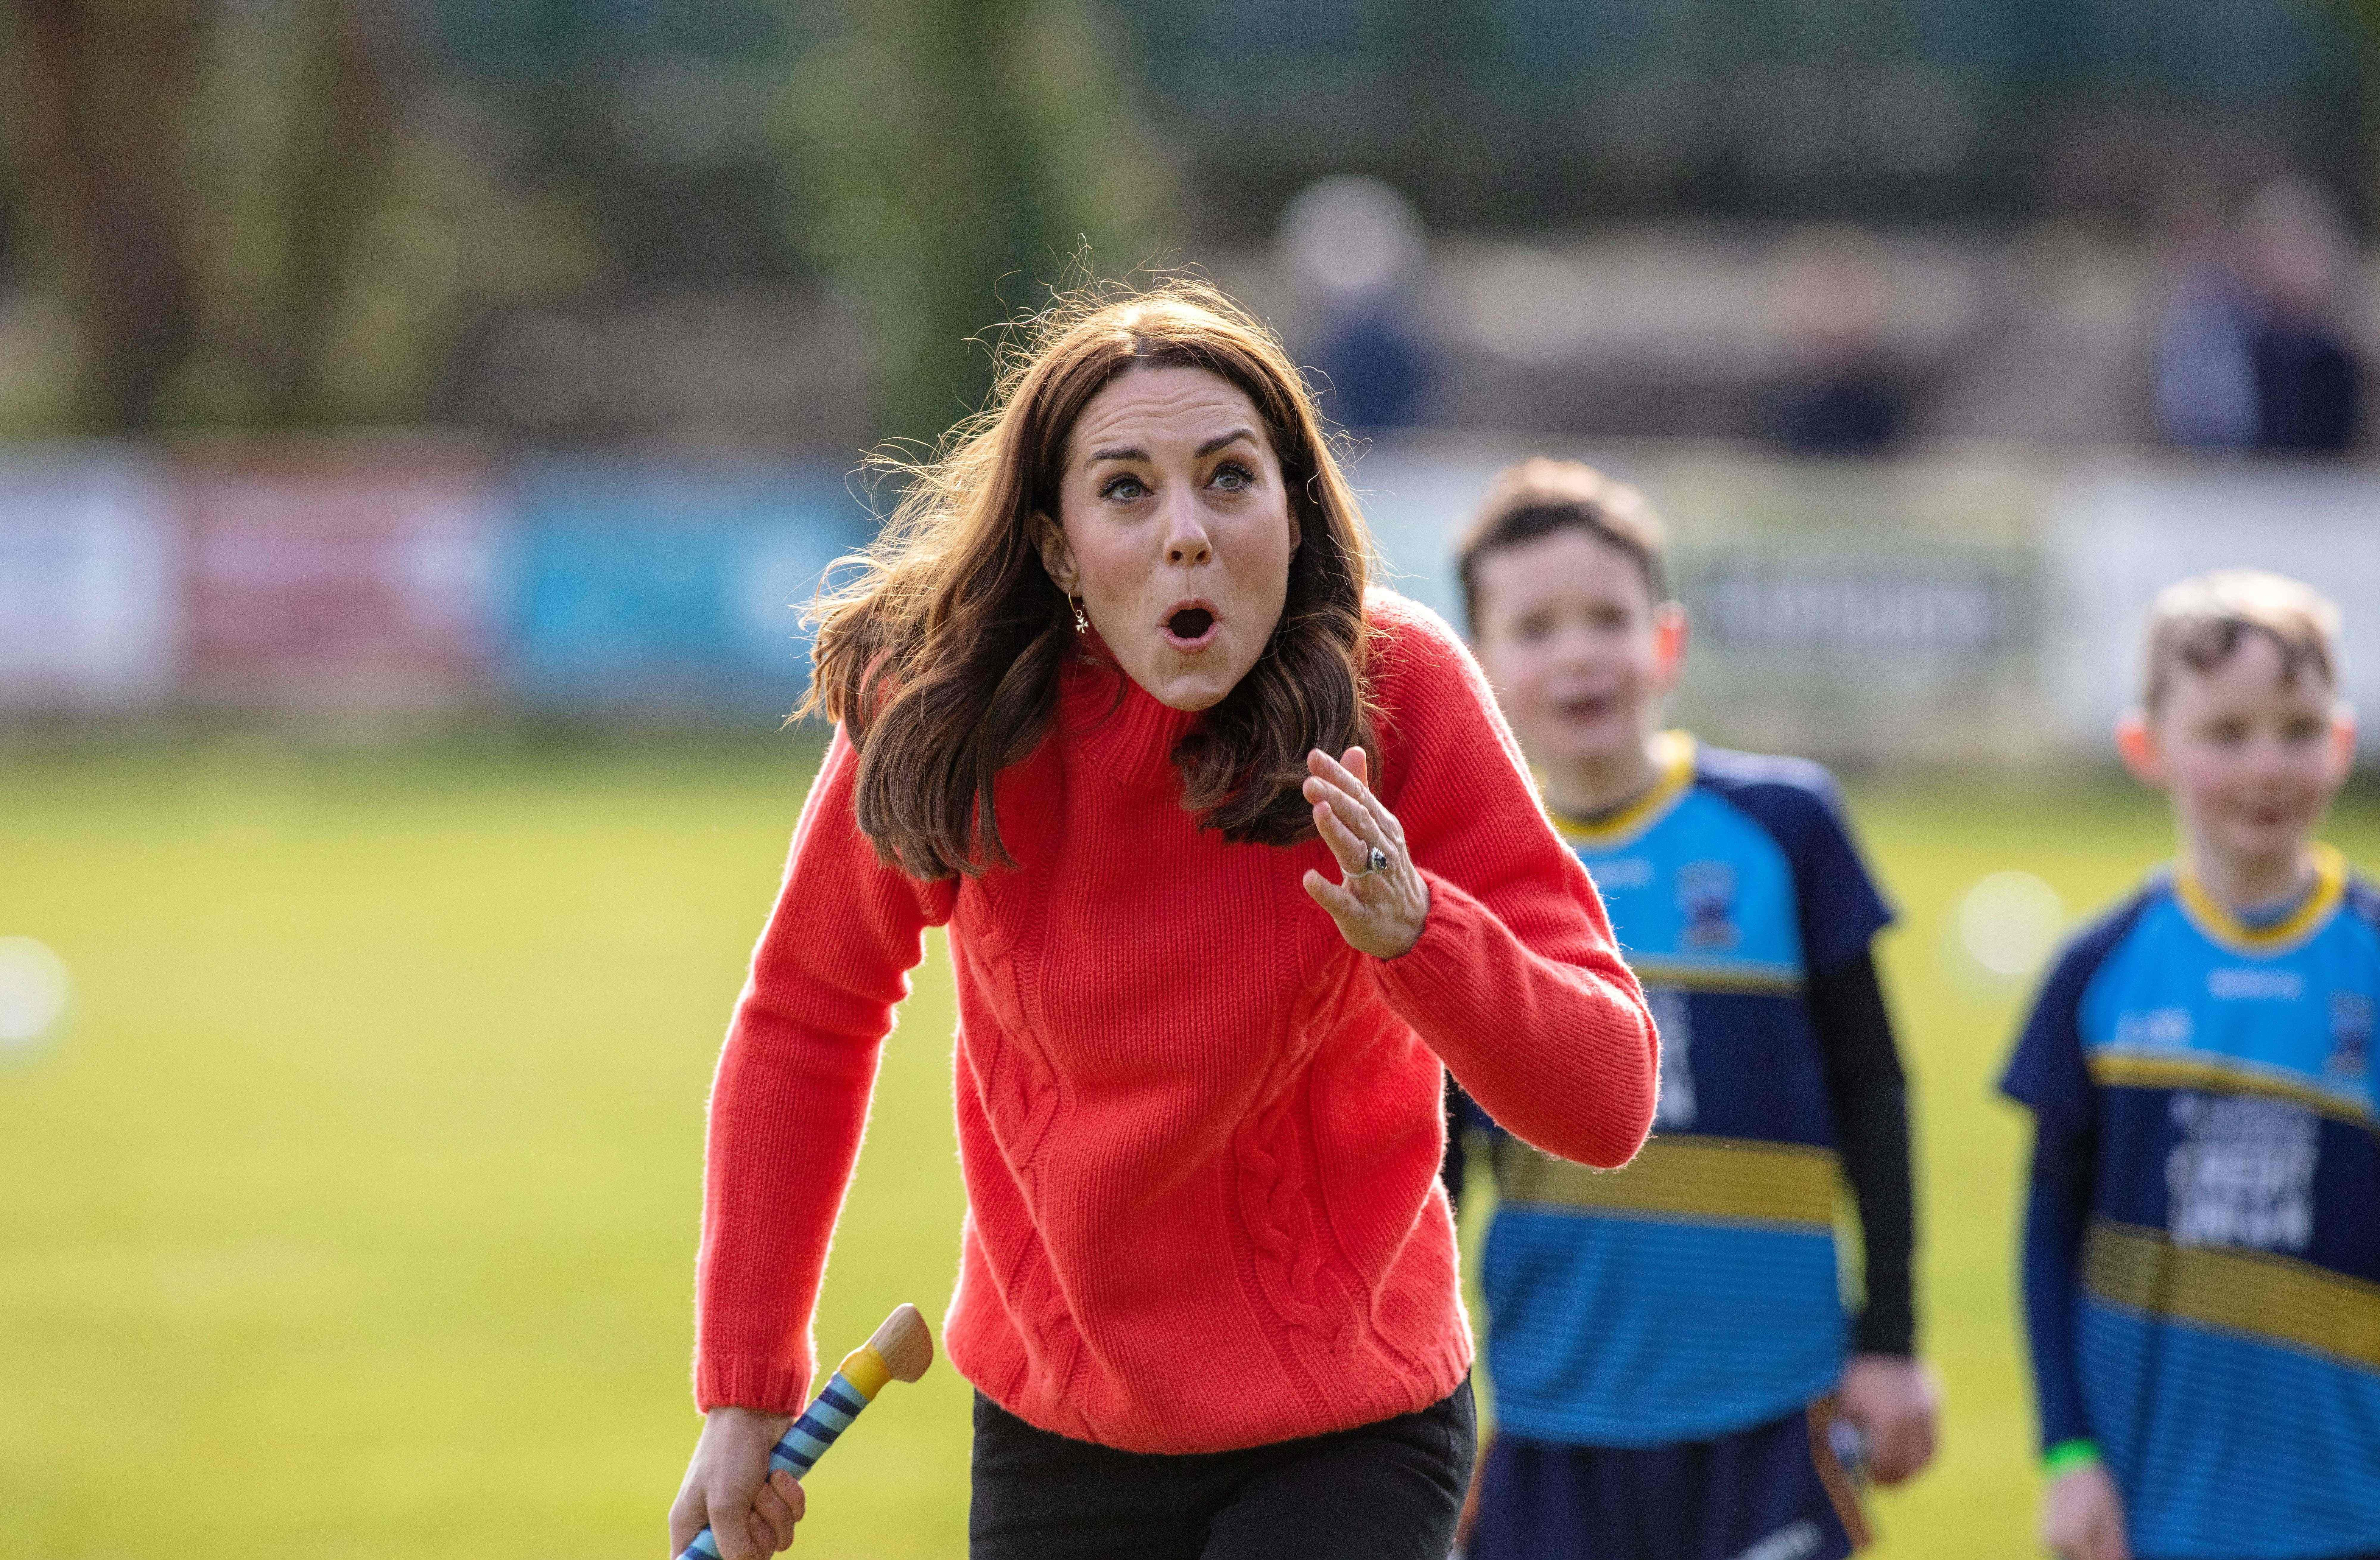 Britain's Catherine, Duchess of Cambridge, reacts after hitting the ball whilst attempting to play hurling during a visit to Salthill Gaelic Athletic Association (GAA) club in Galway, western Ireland, on March 5, 2020 on the final day of their three day visit. (Photo by Paul Faith / AFP) (Photo by PAUL FAITH/AFP via Getty Images)